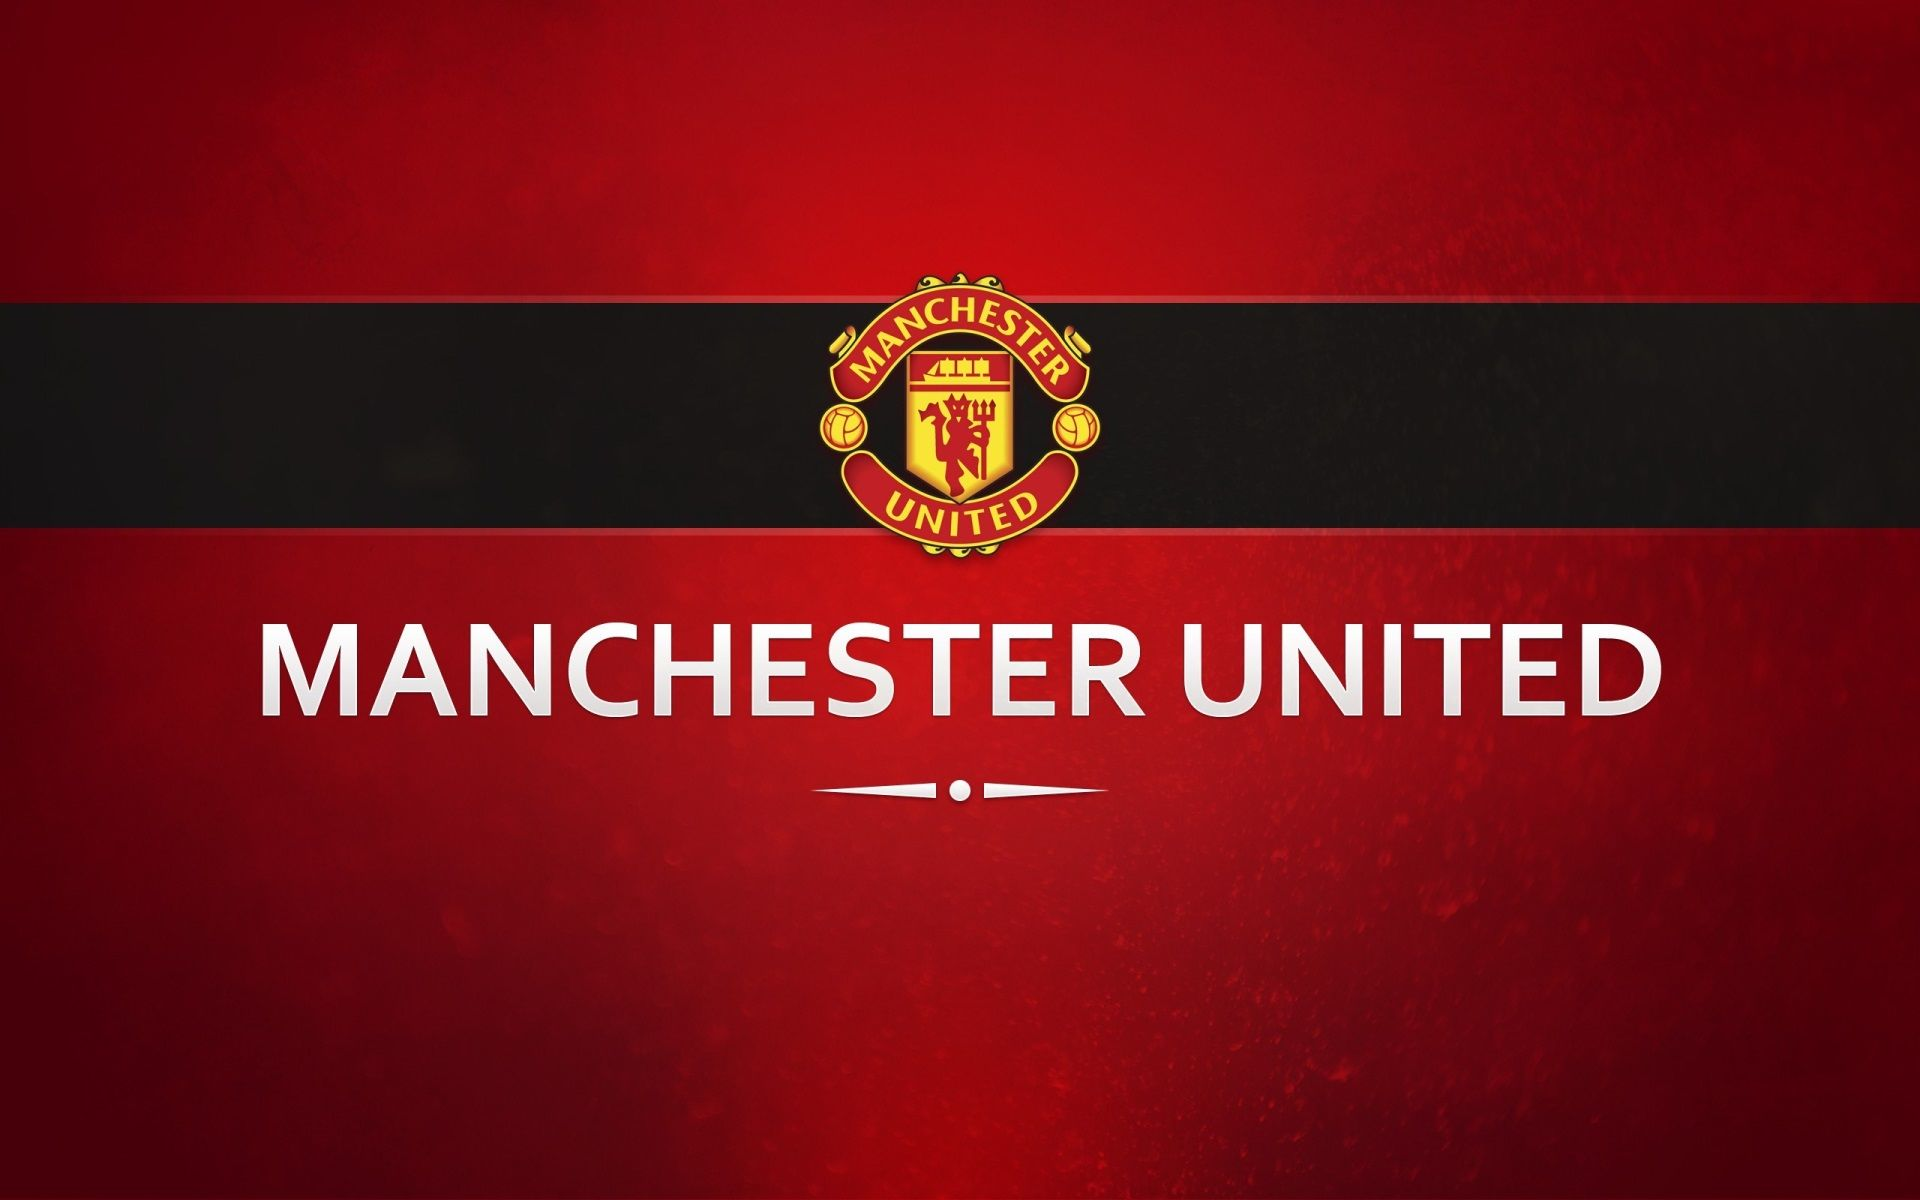 1920x1200 Manchester United Hd Wallpaper Background Manchester United Wallpaper Manchester United Logo Manchester United